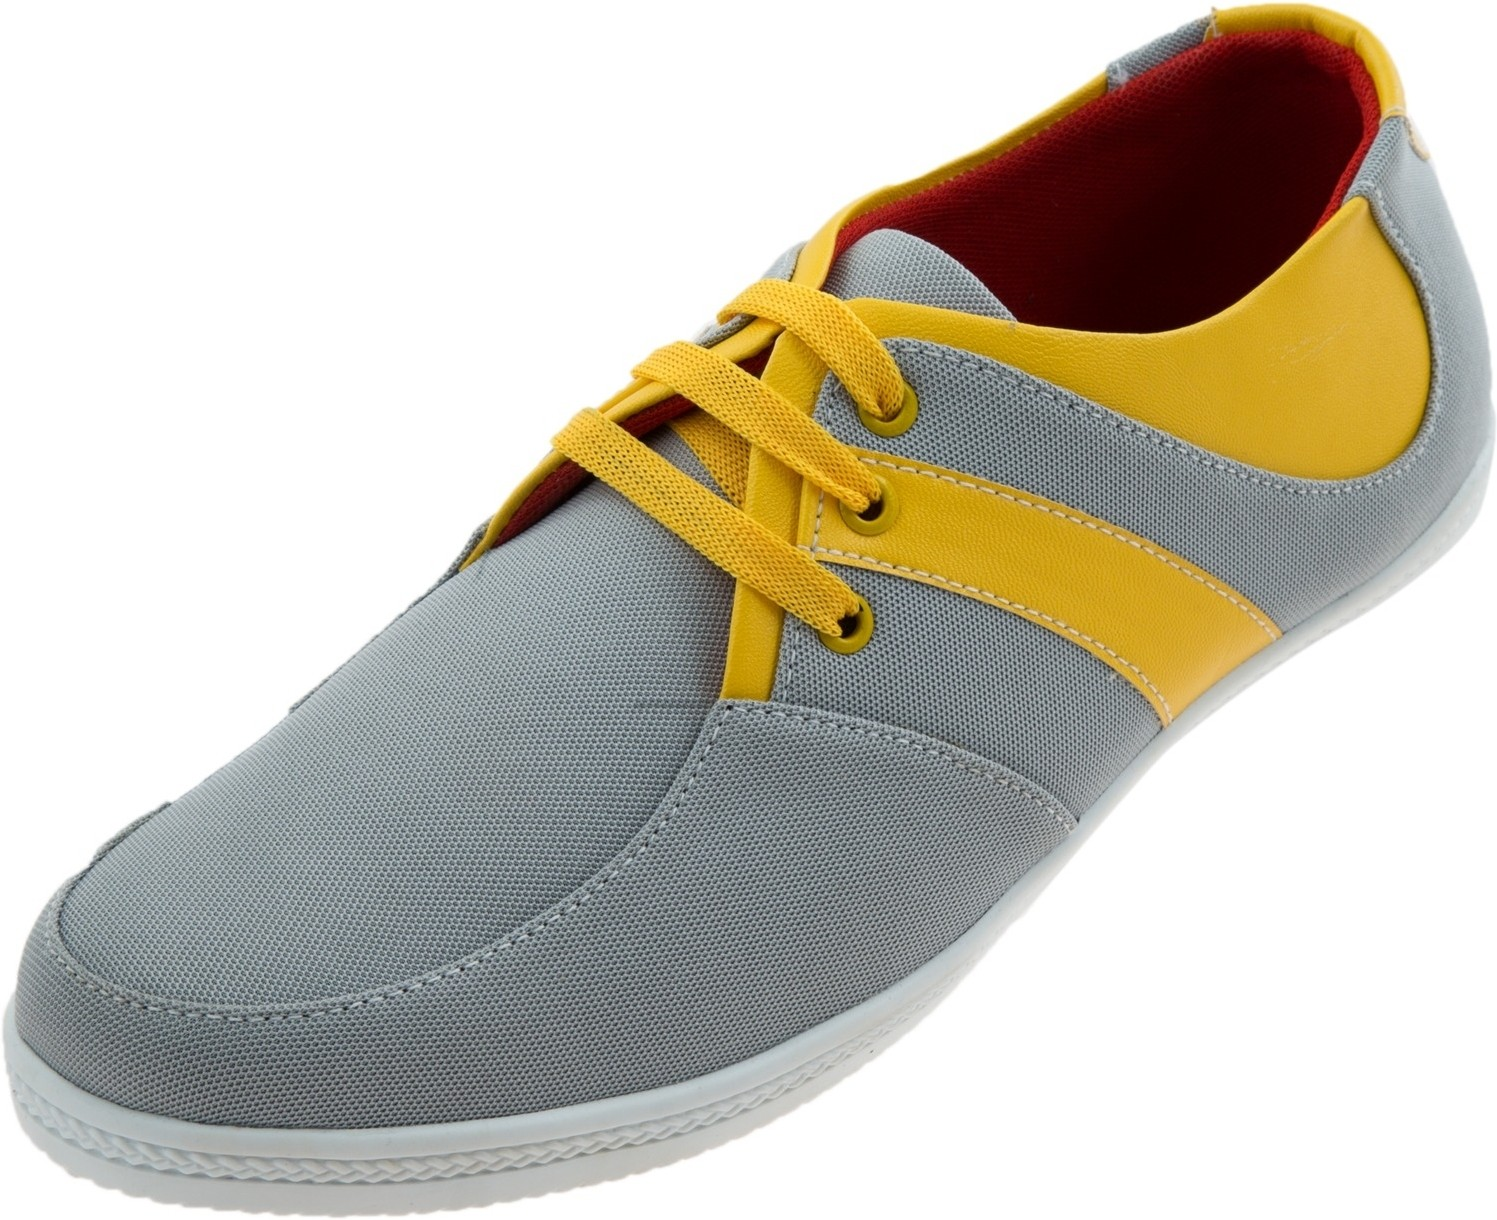 Zovi Grey with Yellow Stripes Quarter Sneakers(Grey, Yellow)